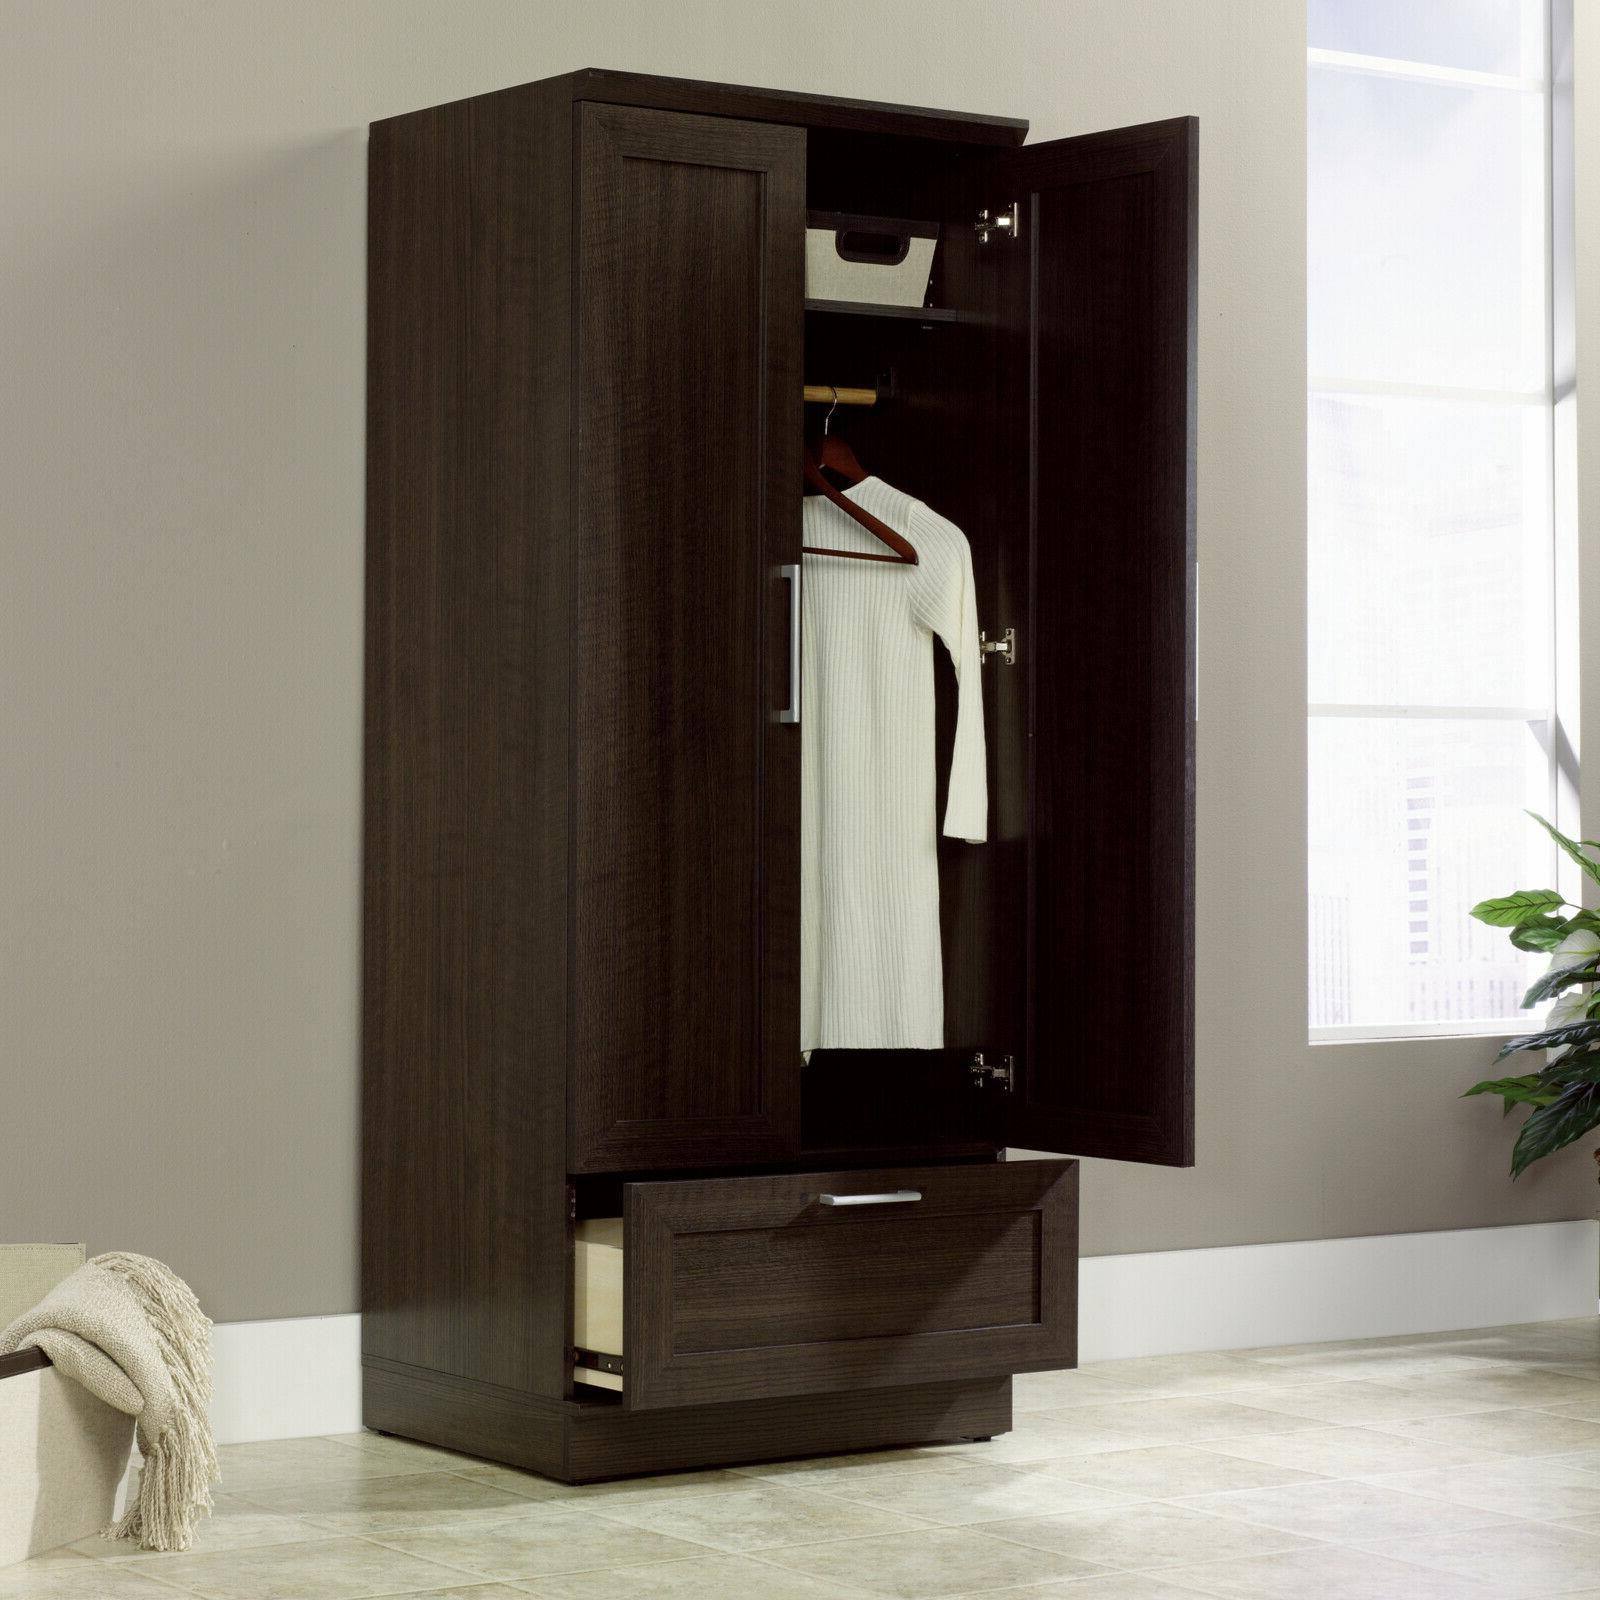 Armoire Storage Closet Organizer Brown Oak